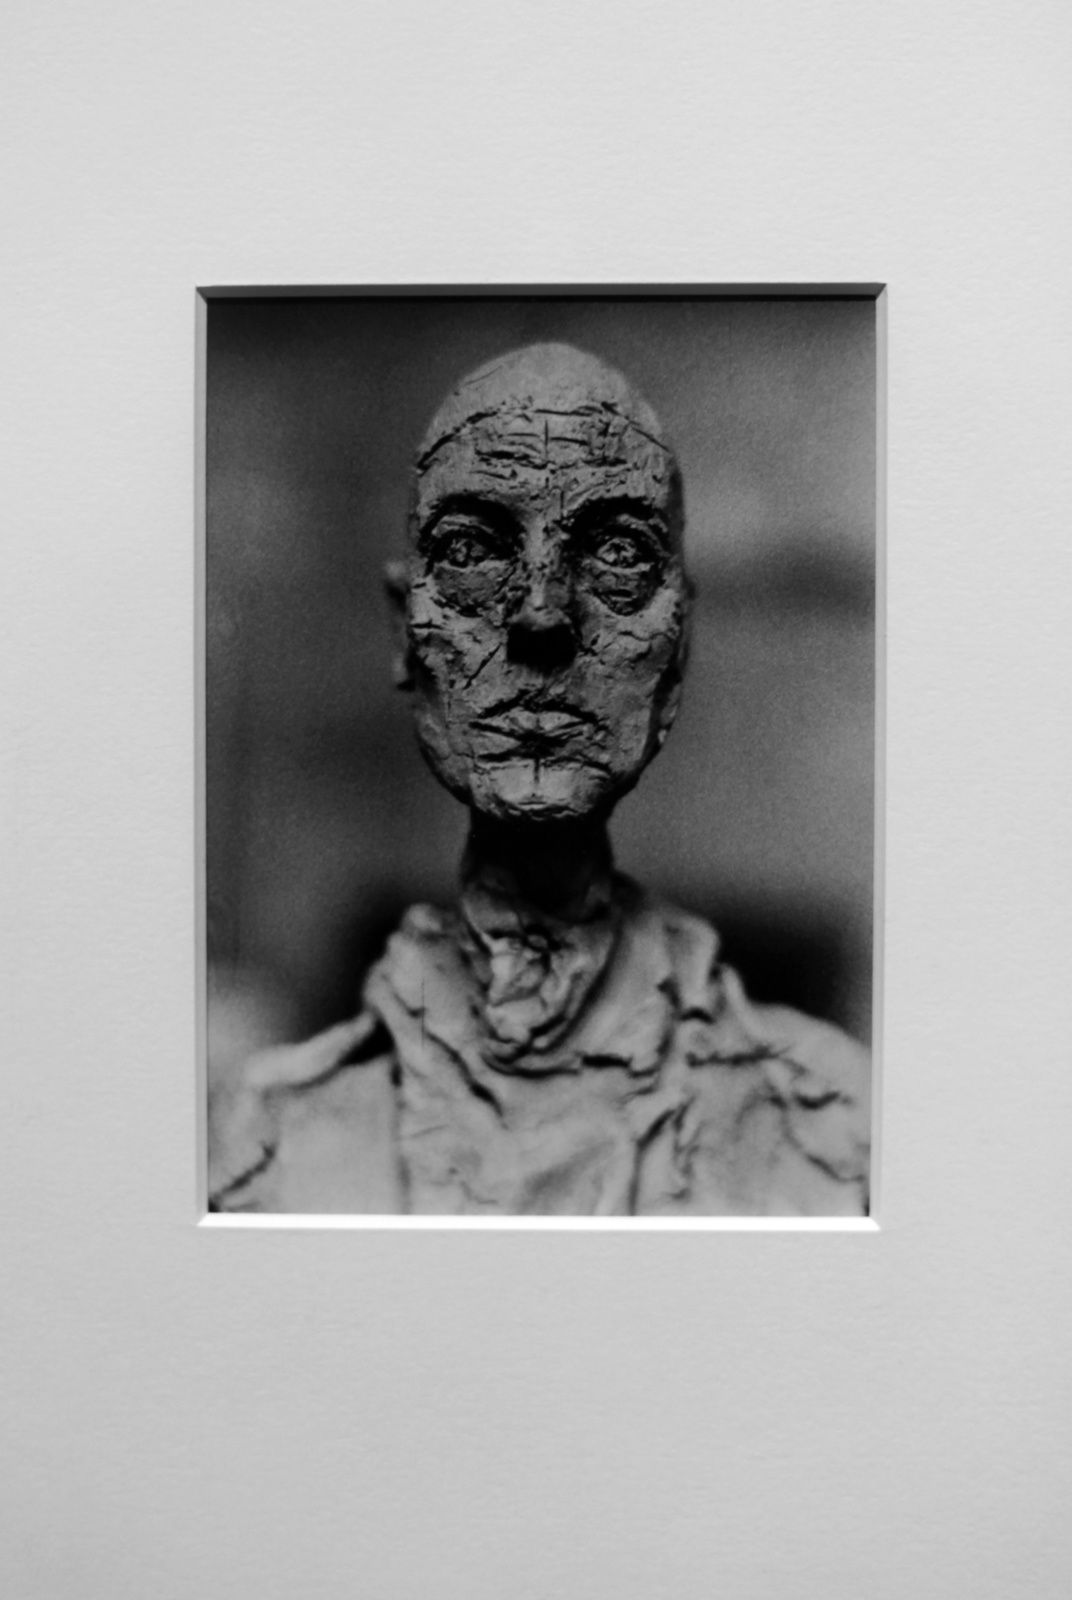 """Giacometti, Buste de LOTAR"", 1965 de Eli LOTAR - Courtesy Centre Pompidou, Paris © Photo Éric Simon"